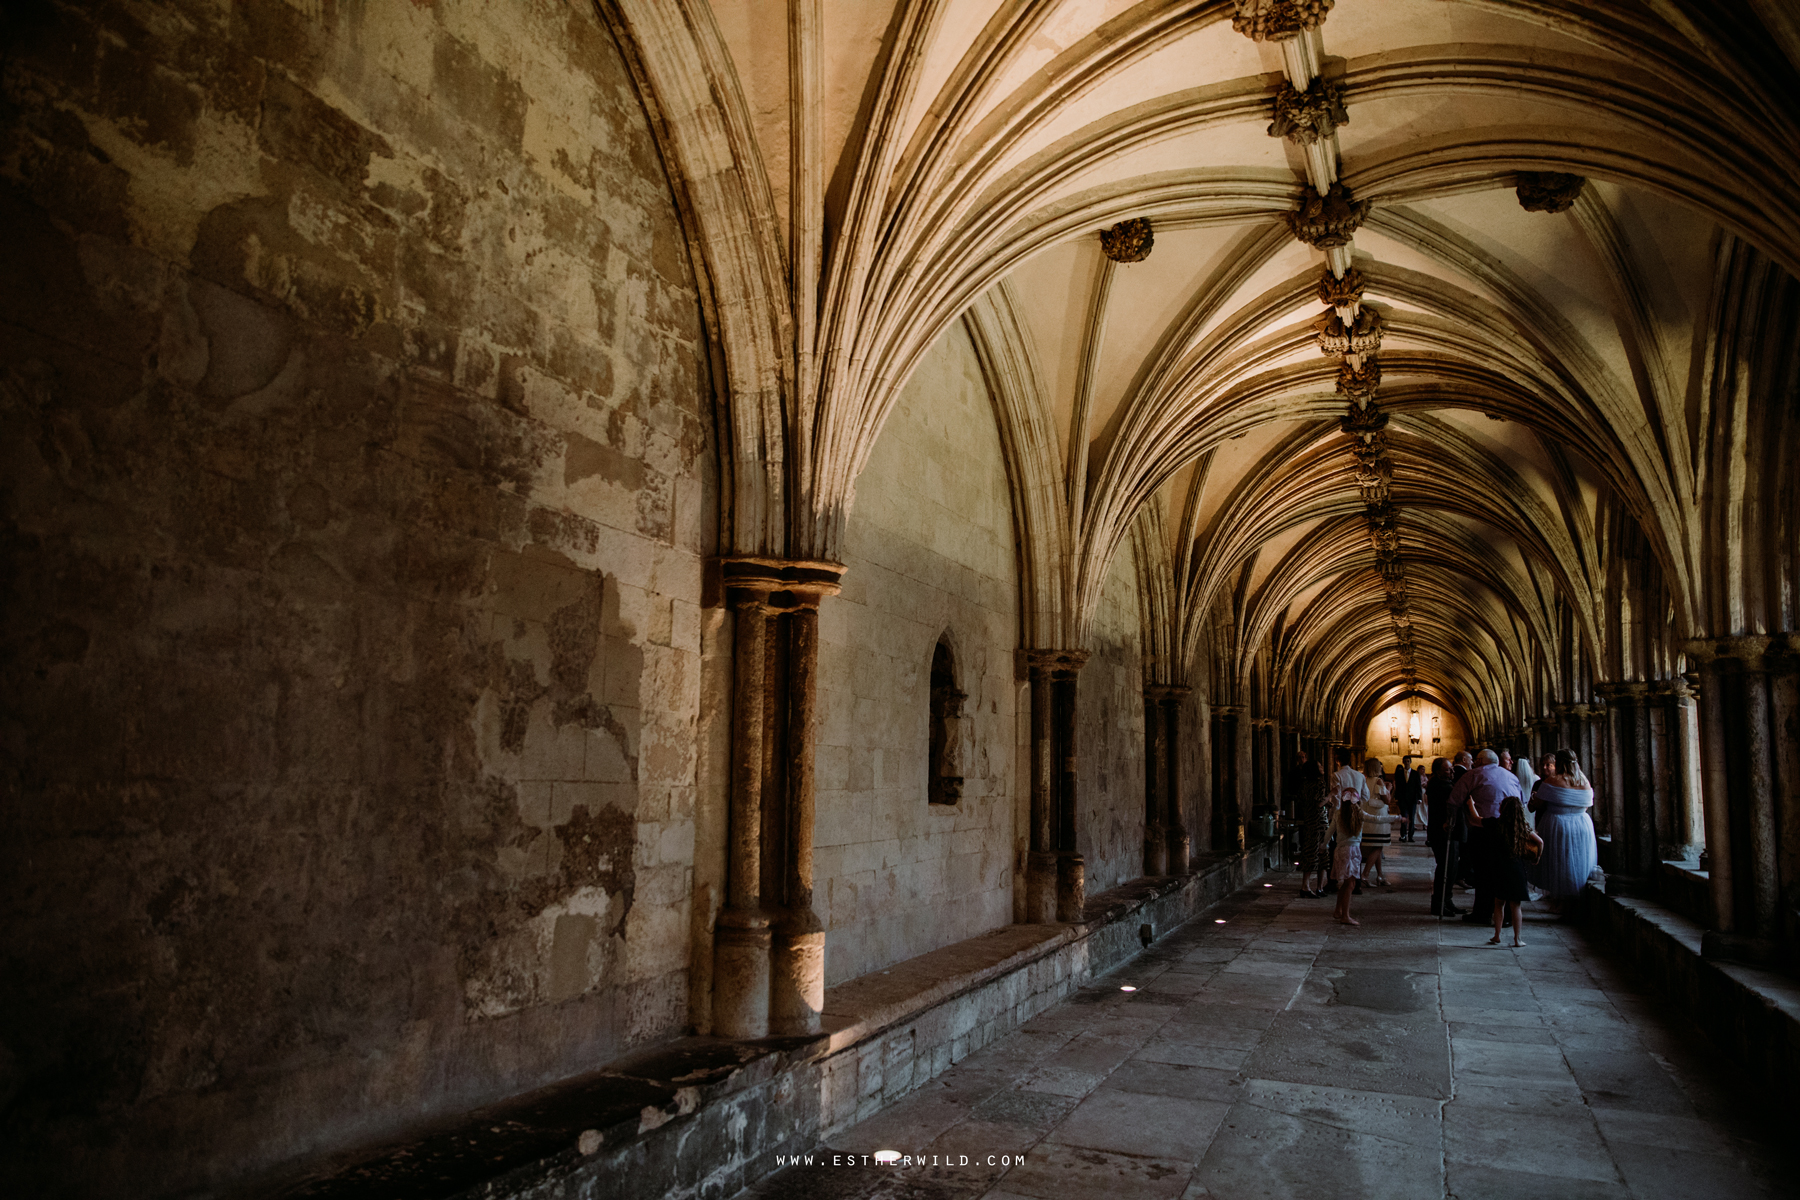 Norwich_Castle_Arcade_Grosvenor_Chip_Birdcage_Cathedral_Cloisters_Refectory_Wedding_Photography_Esther_Wild_Photographer_Norfolk_Kings_Lynn_3R8A3132.jpg